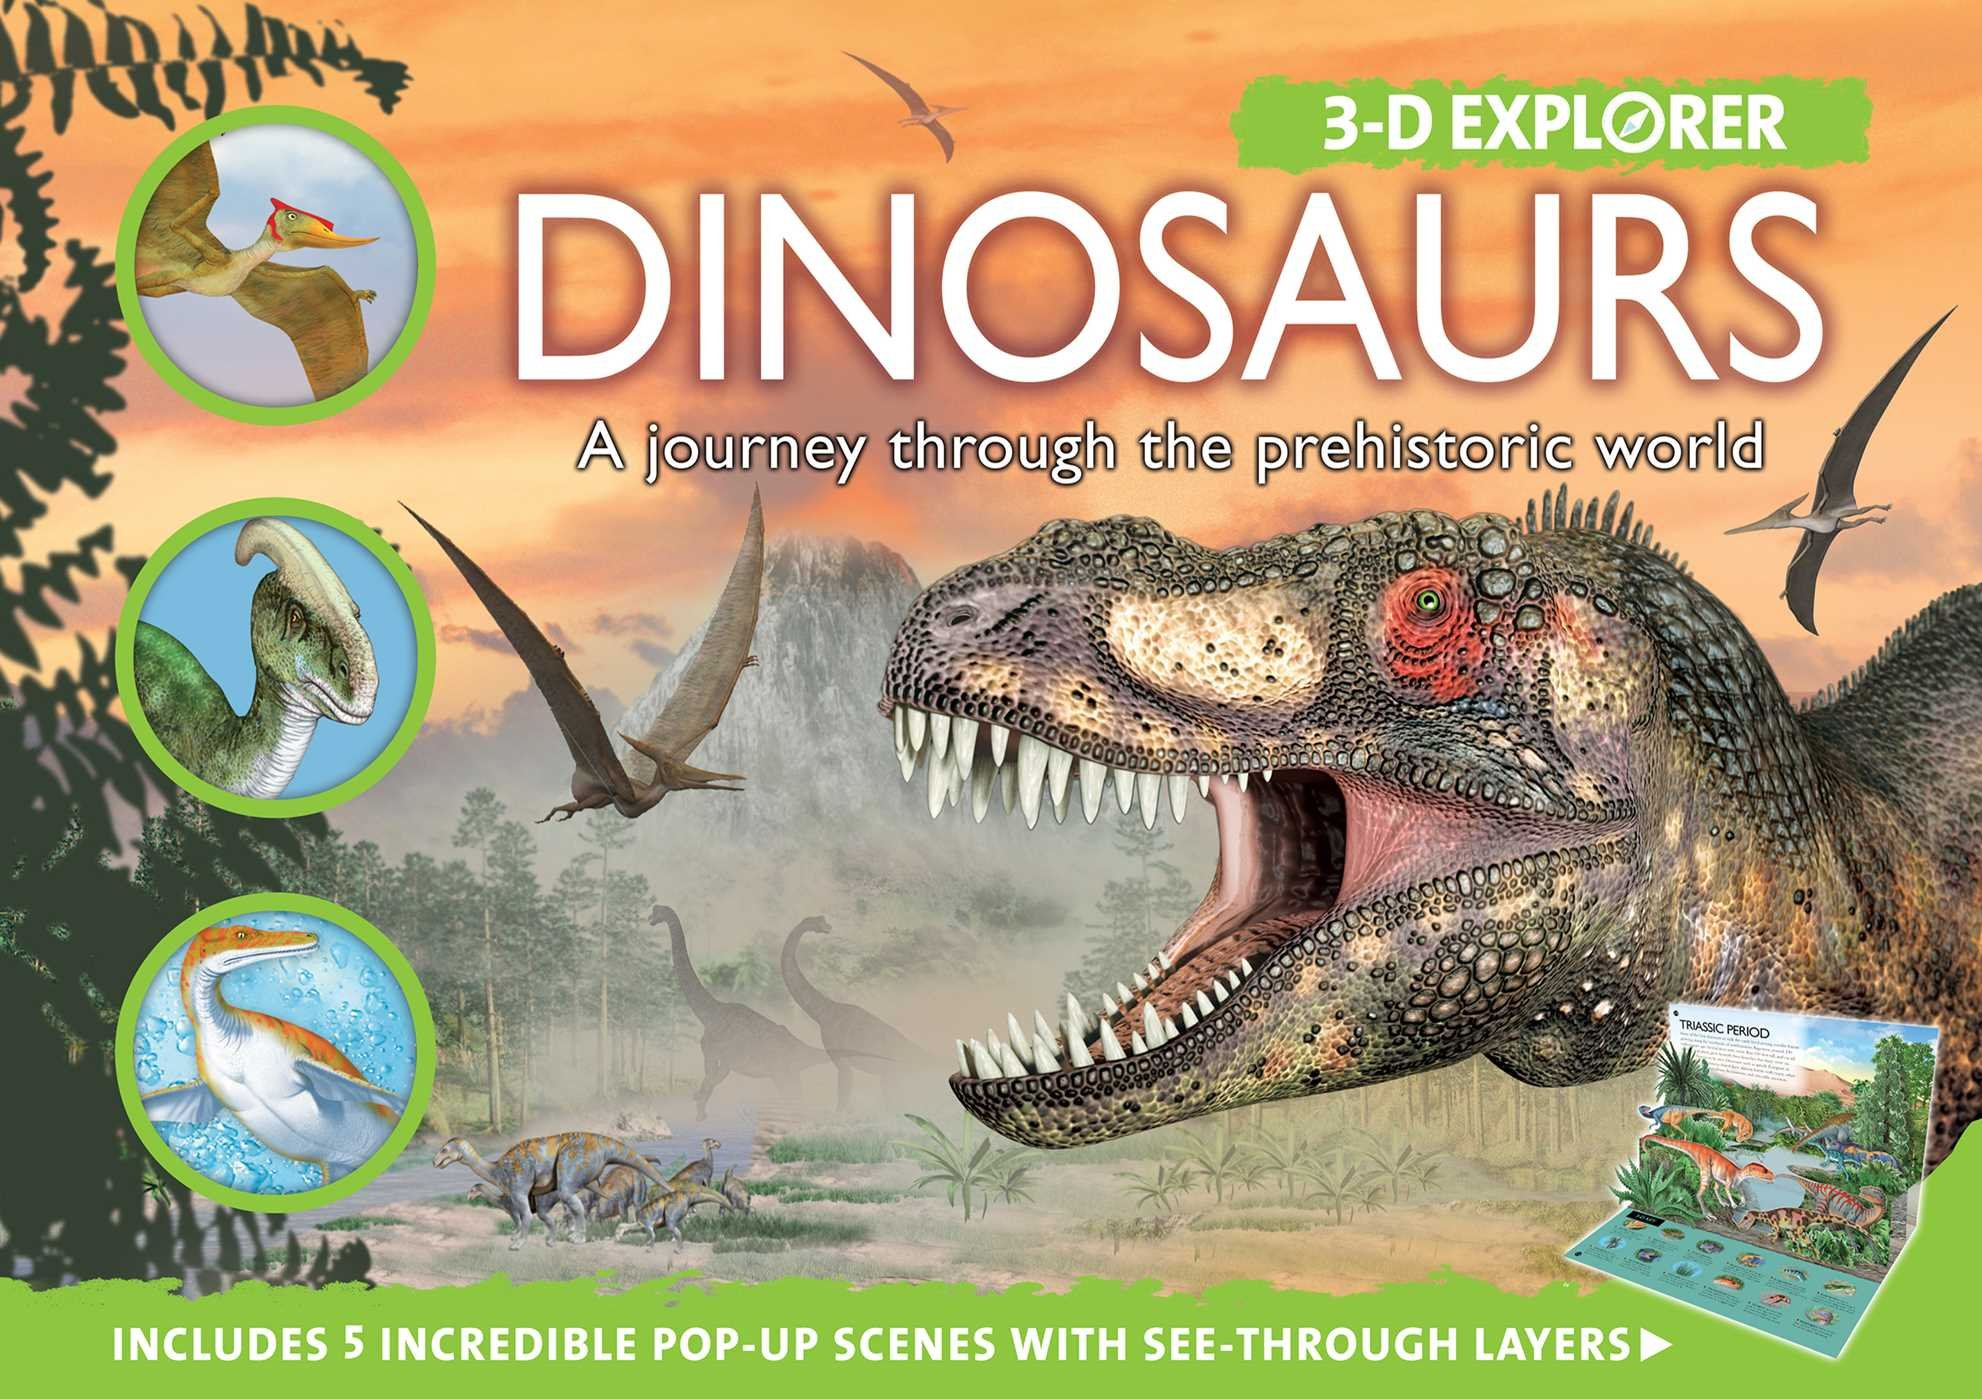 3-D Explorer: Dinosaurs Hardcover – April 10, 2010 Barbara Taylor Silver Dolphin Books 1607101467 FBA-|305417